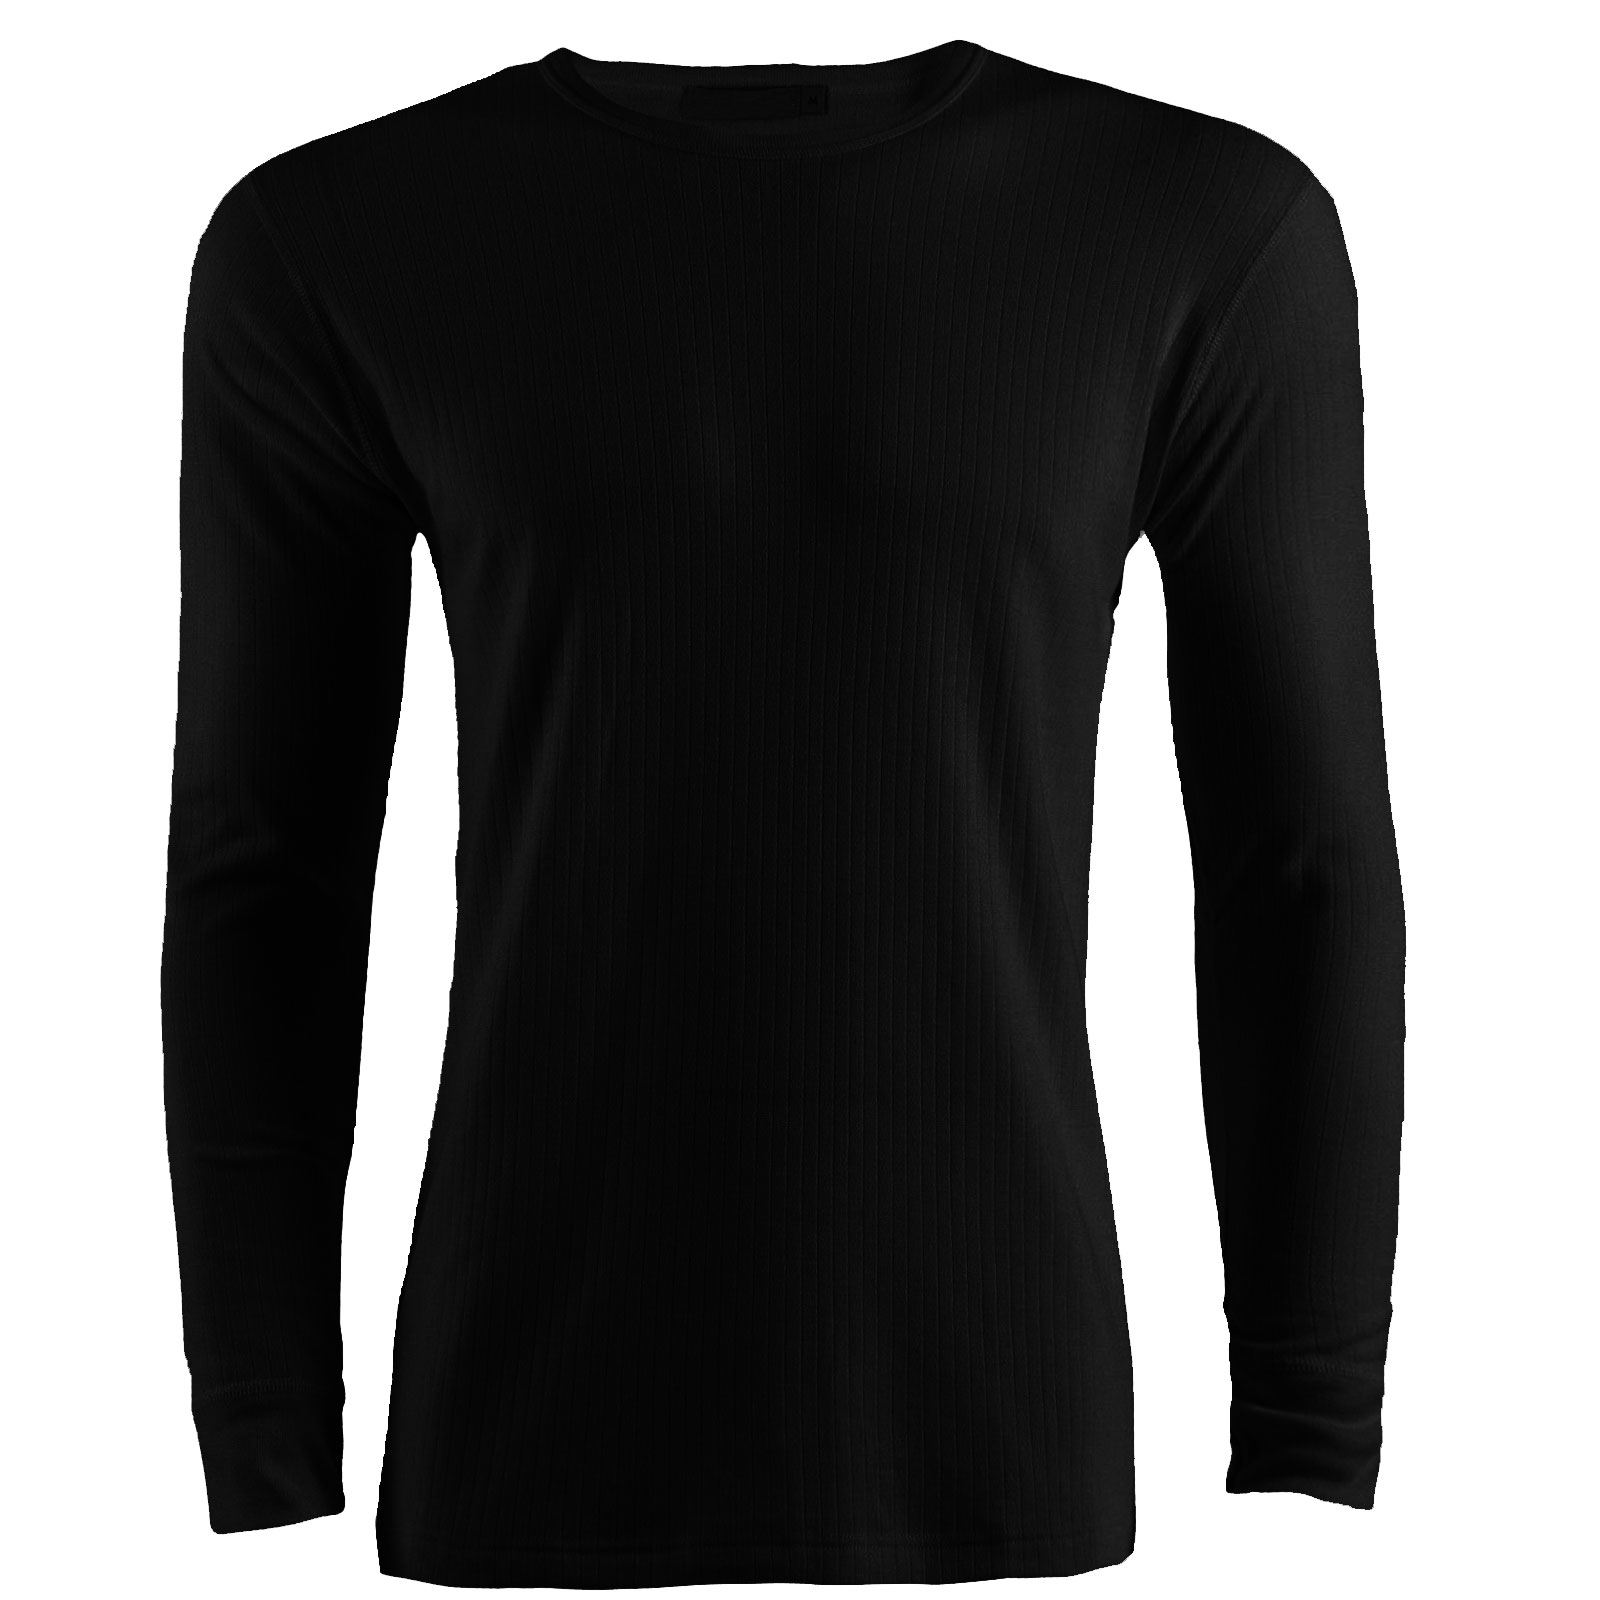 Mens Thermal T Shirt Warm Winter Vest Base Layer Top Long: thermal t shirt long sleeve